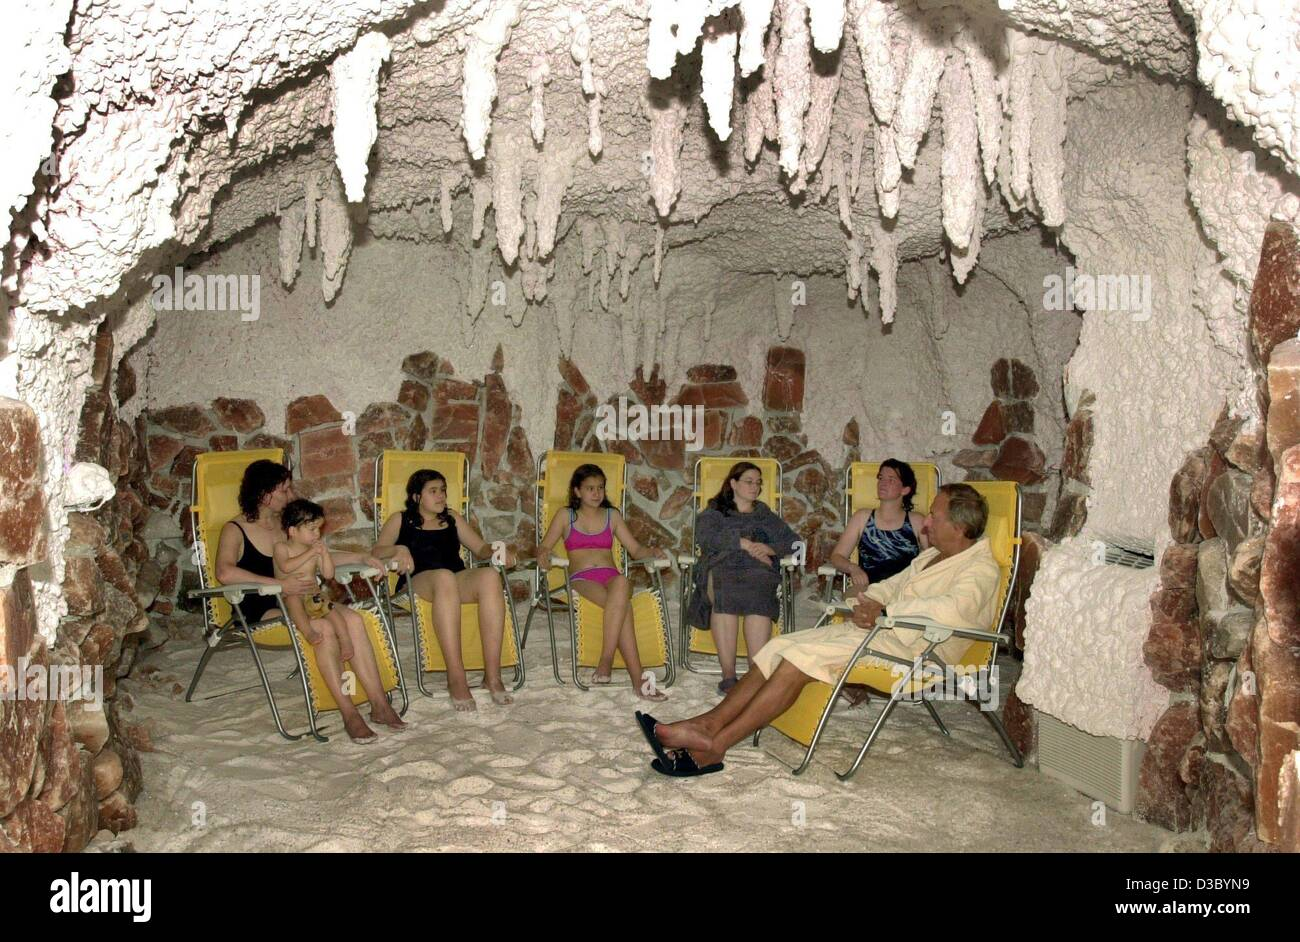 Salt caves in Moscow 12